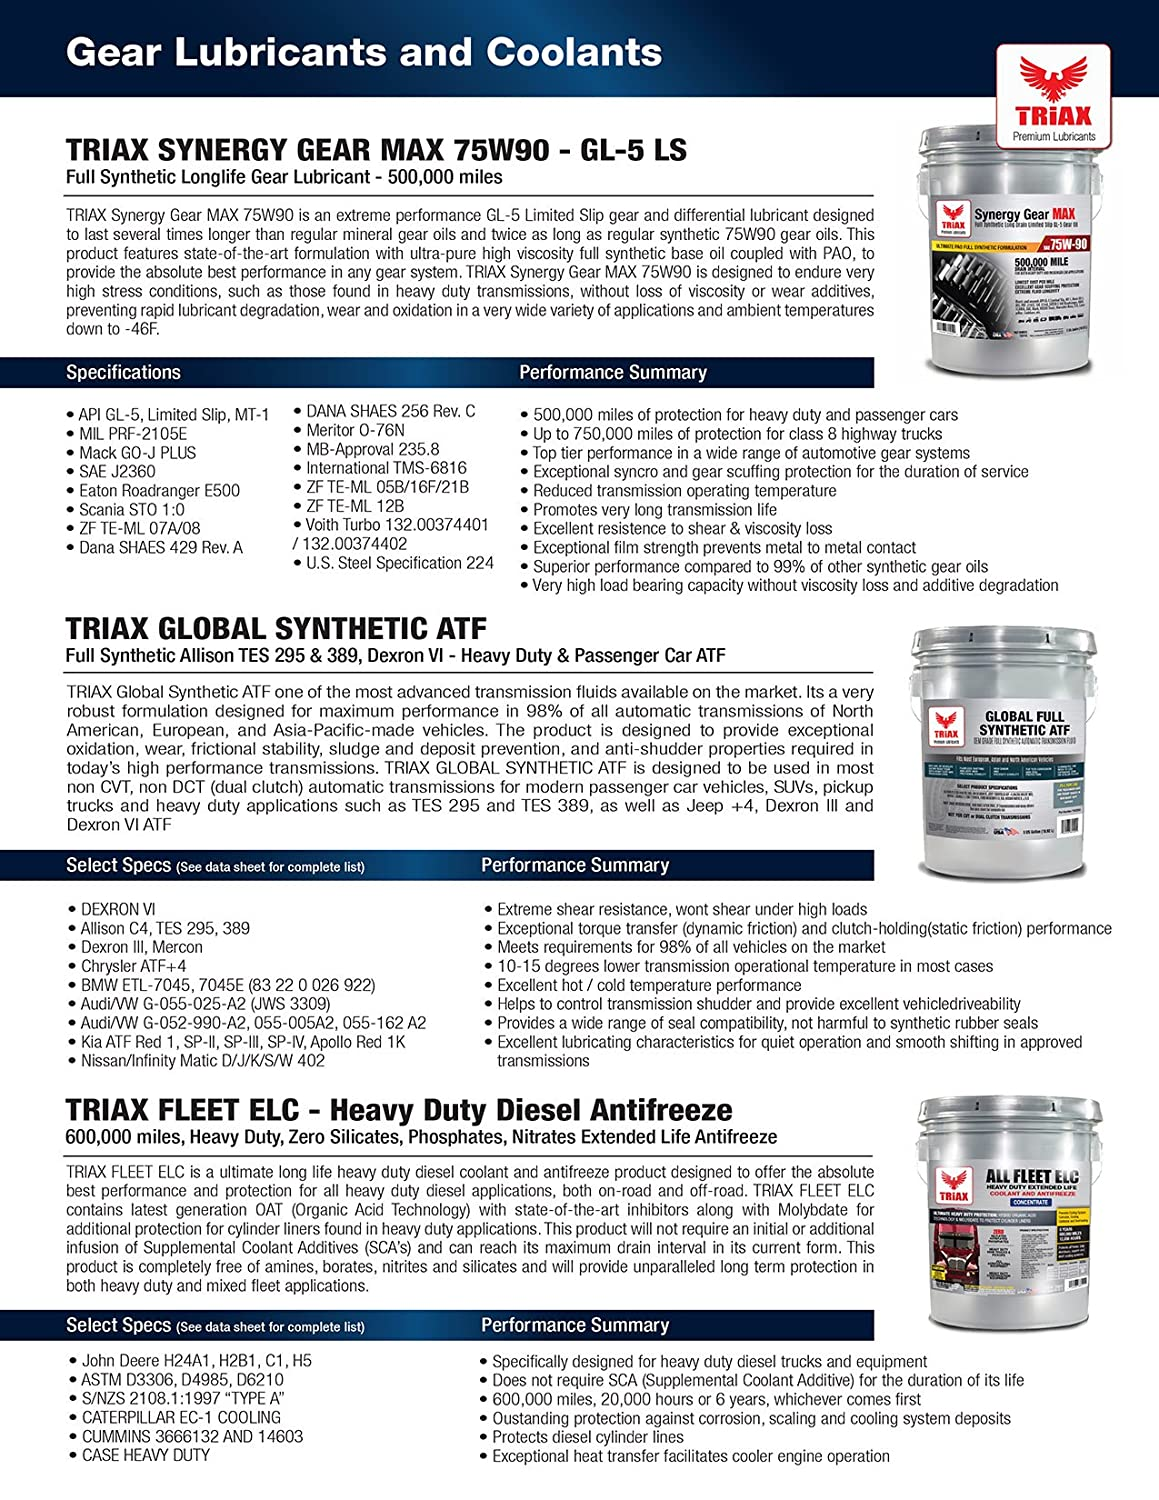 Amazon.com: Triax 5 GAL Pail - Full Synthetic 10W-30 Fleet Supreme CK-4 Heavy Duty Diesel Engine Oil - with CRP Moly Plating Technology.